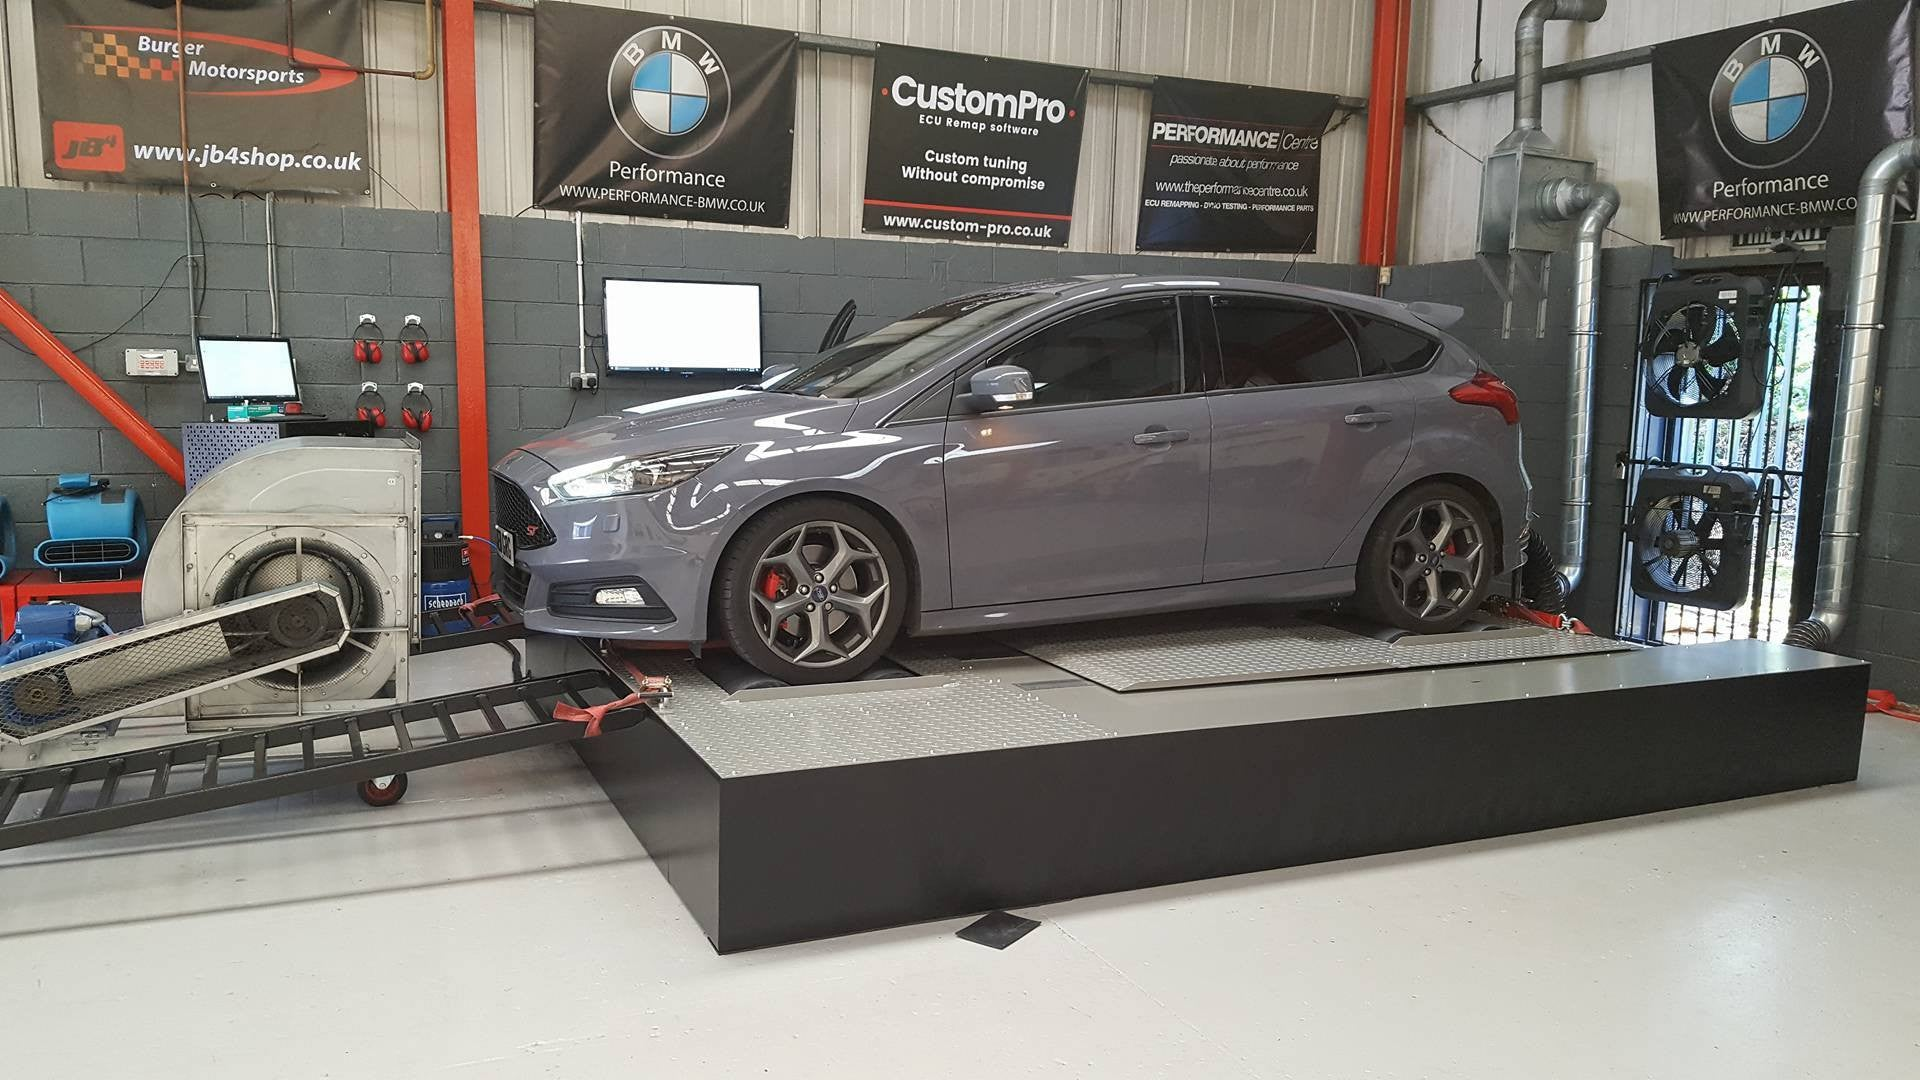 Ford Focus ST Diesel - CustomPro remap